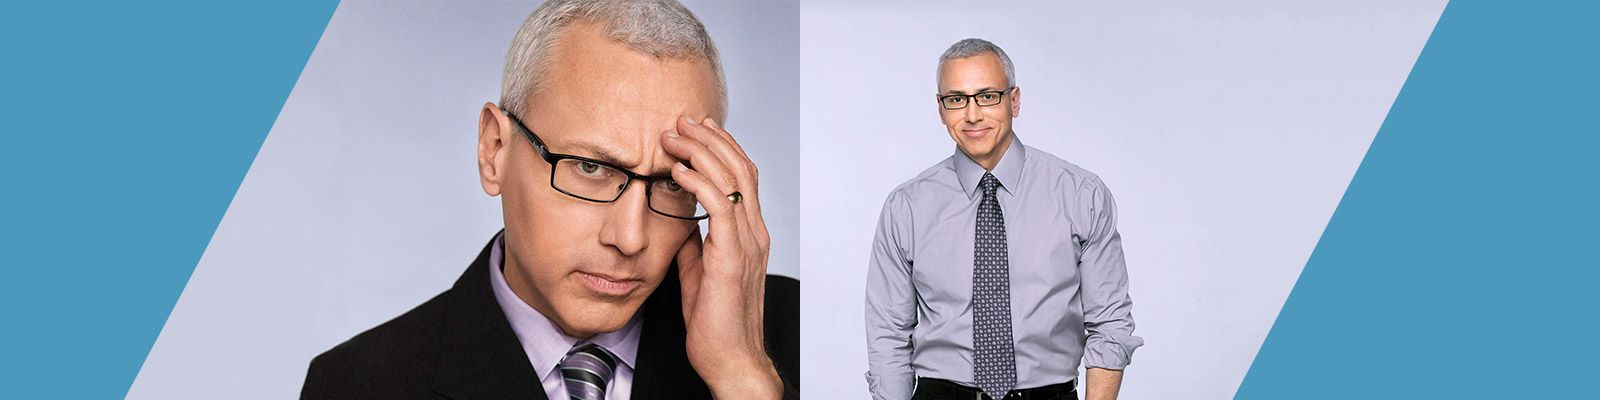 Marvelous Celebrity Rehab With Dr. Drew